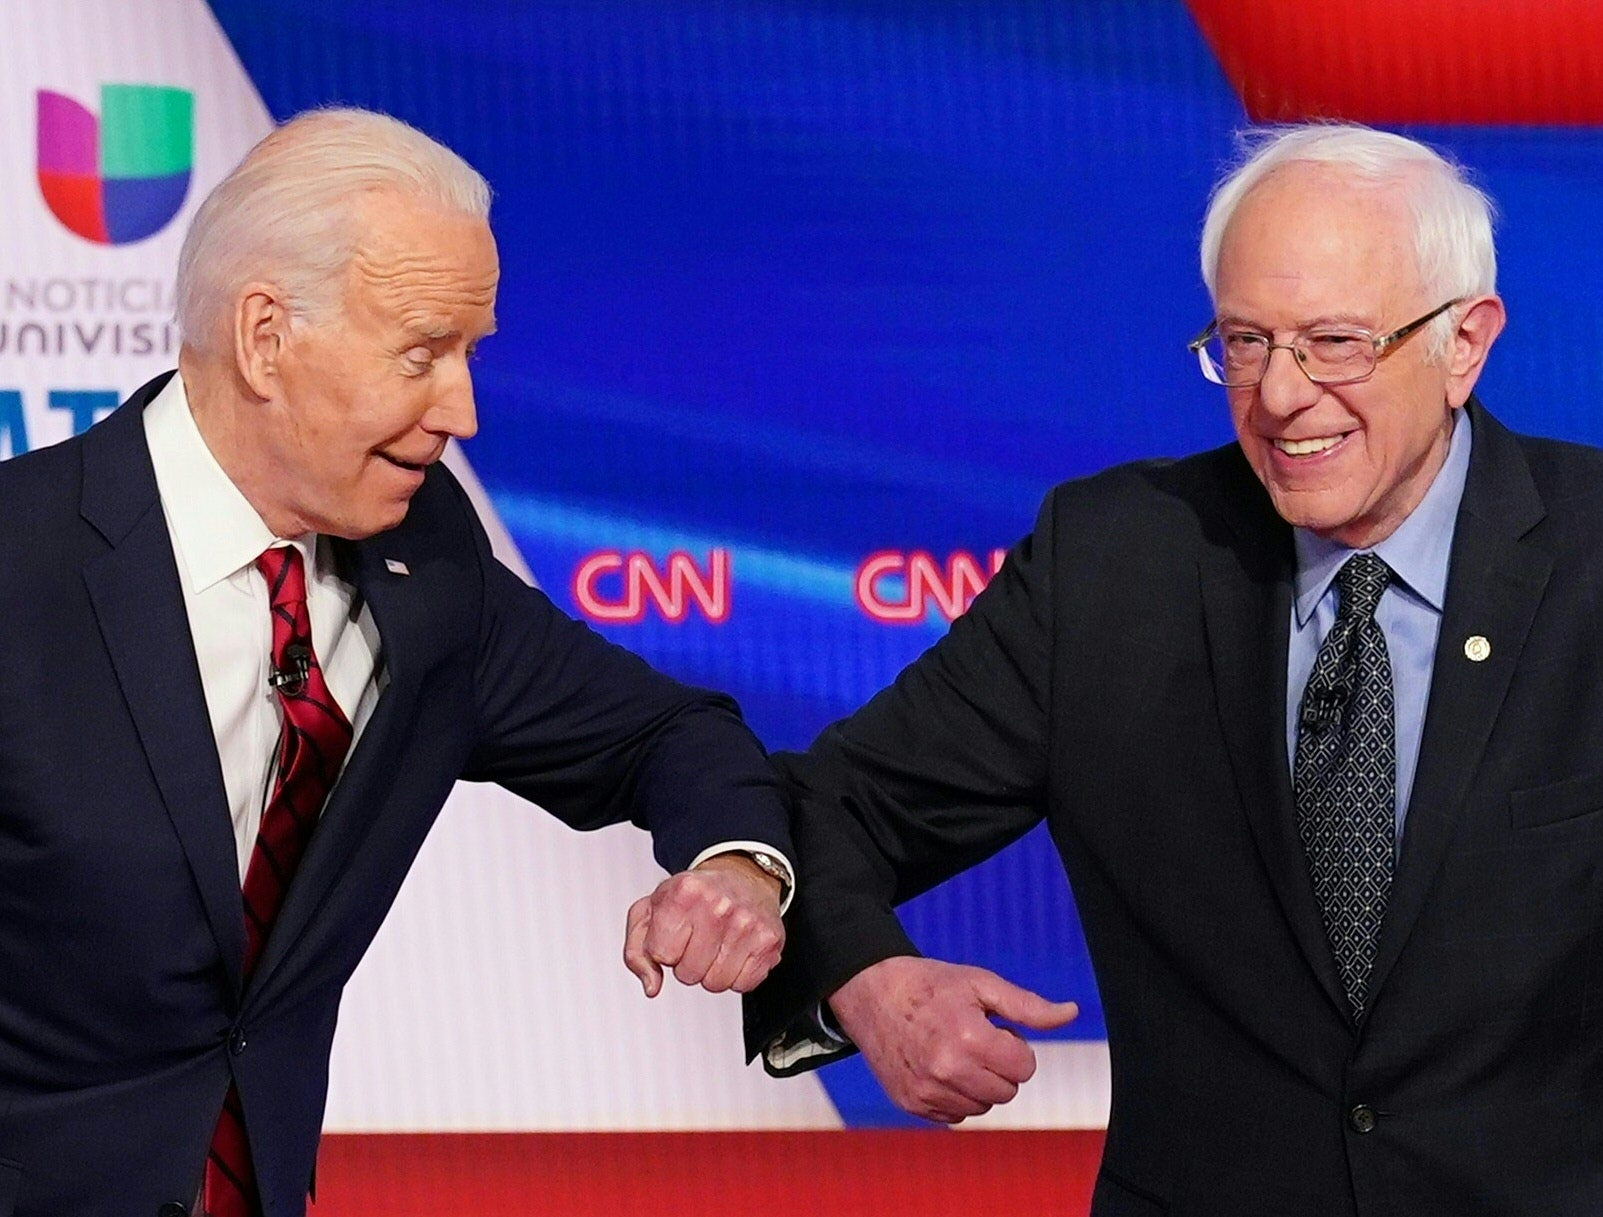 Biden seems to pick up support from young voters, a demographic once linked to Bernie Sanders